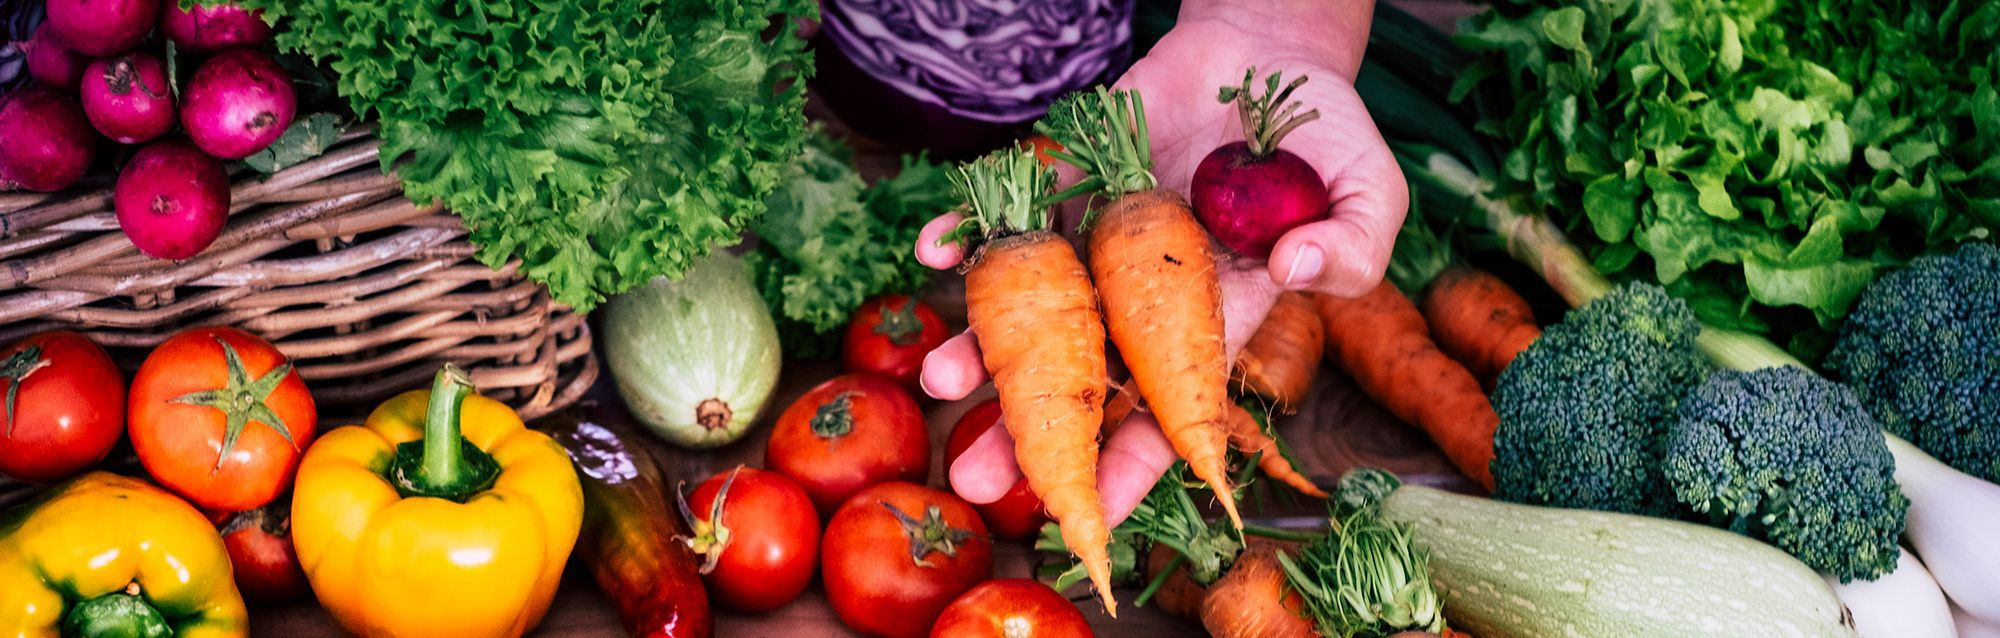 Hand holding carrots with backdrop of vegetables